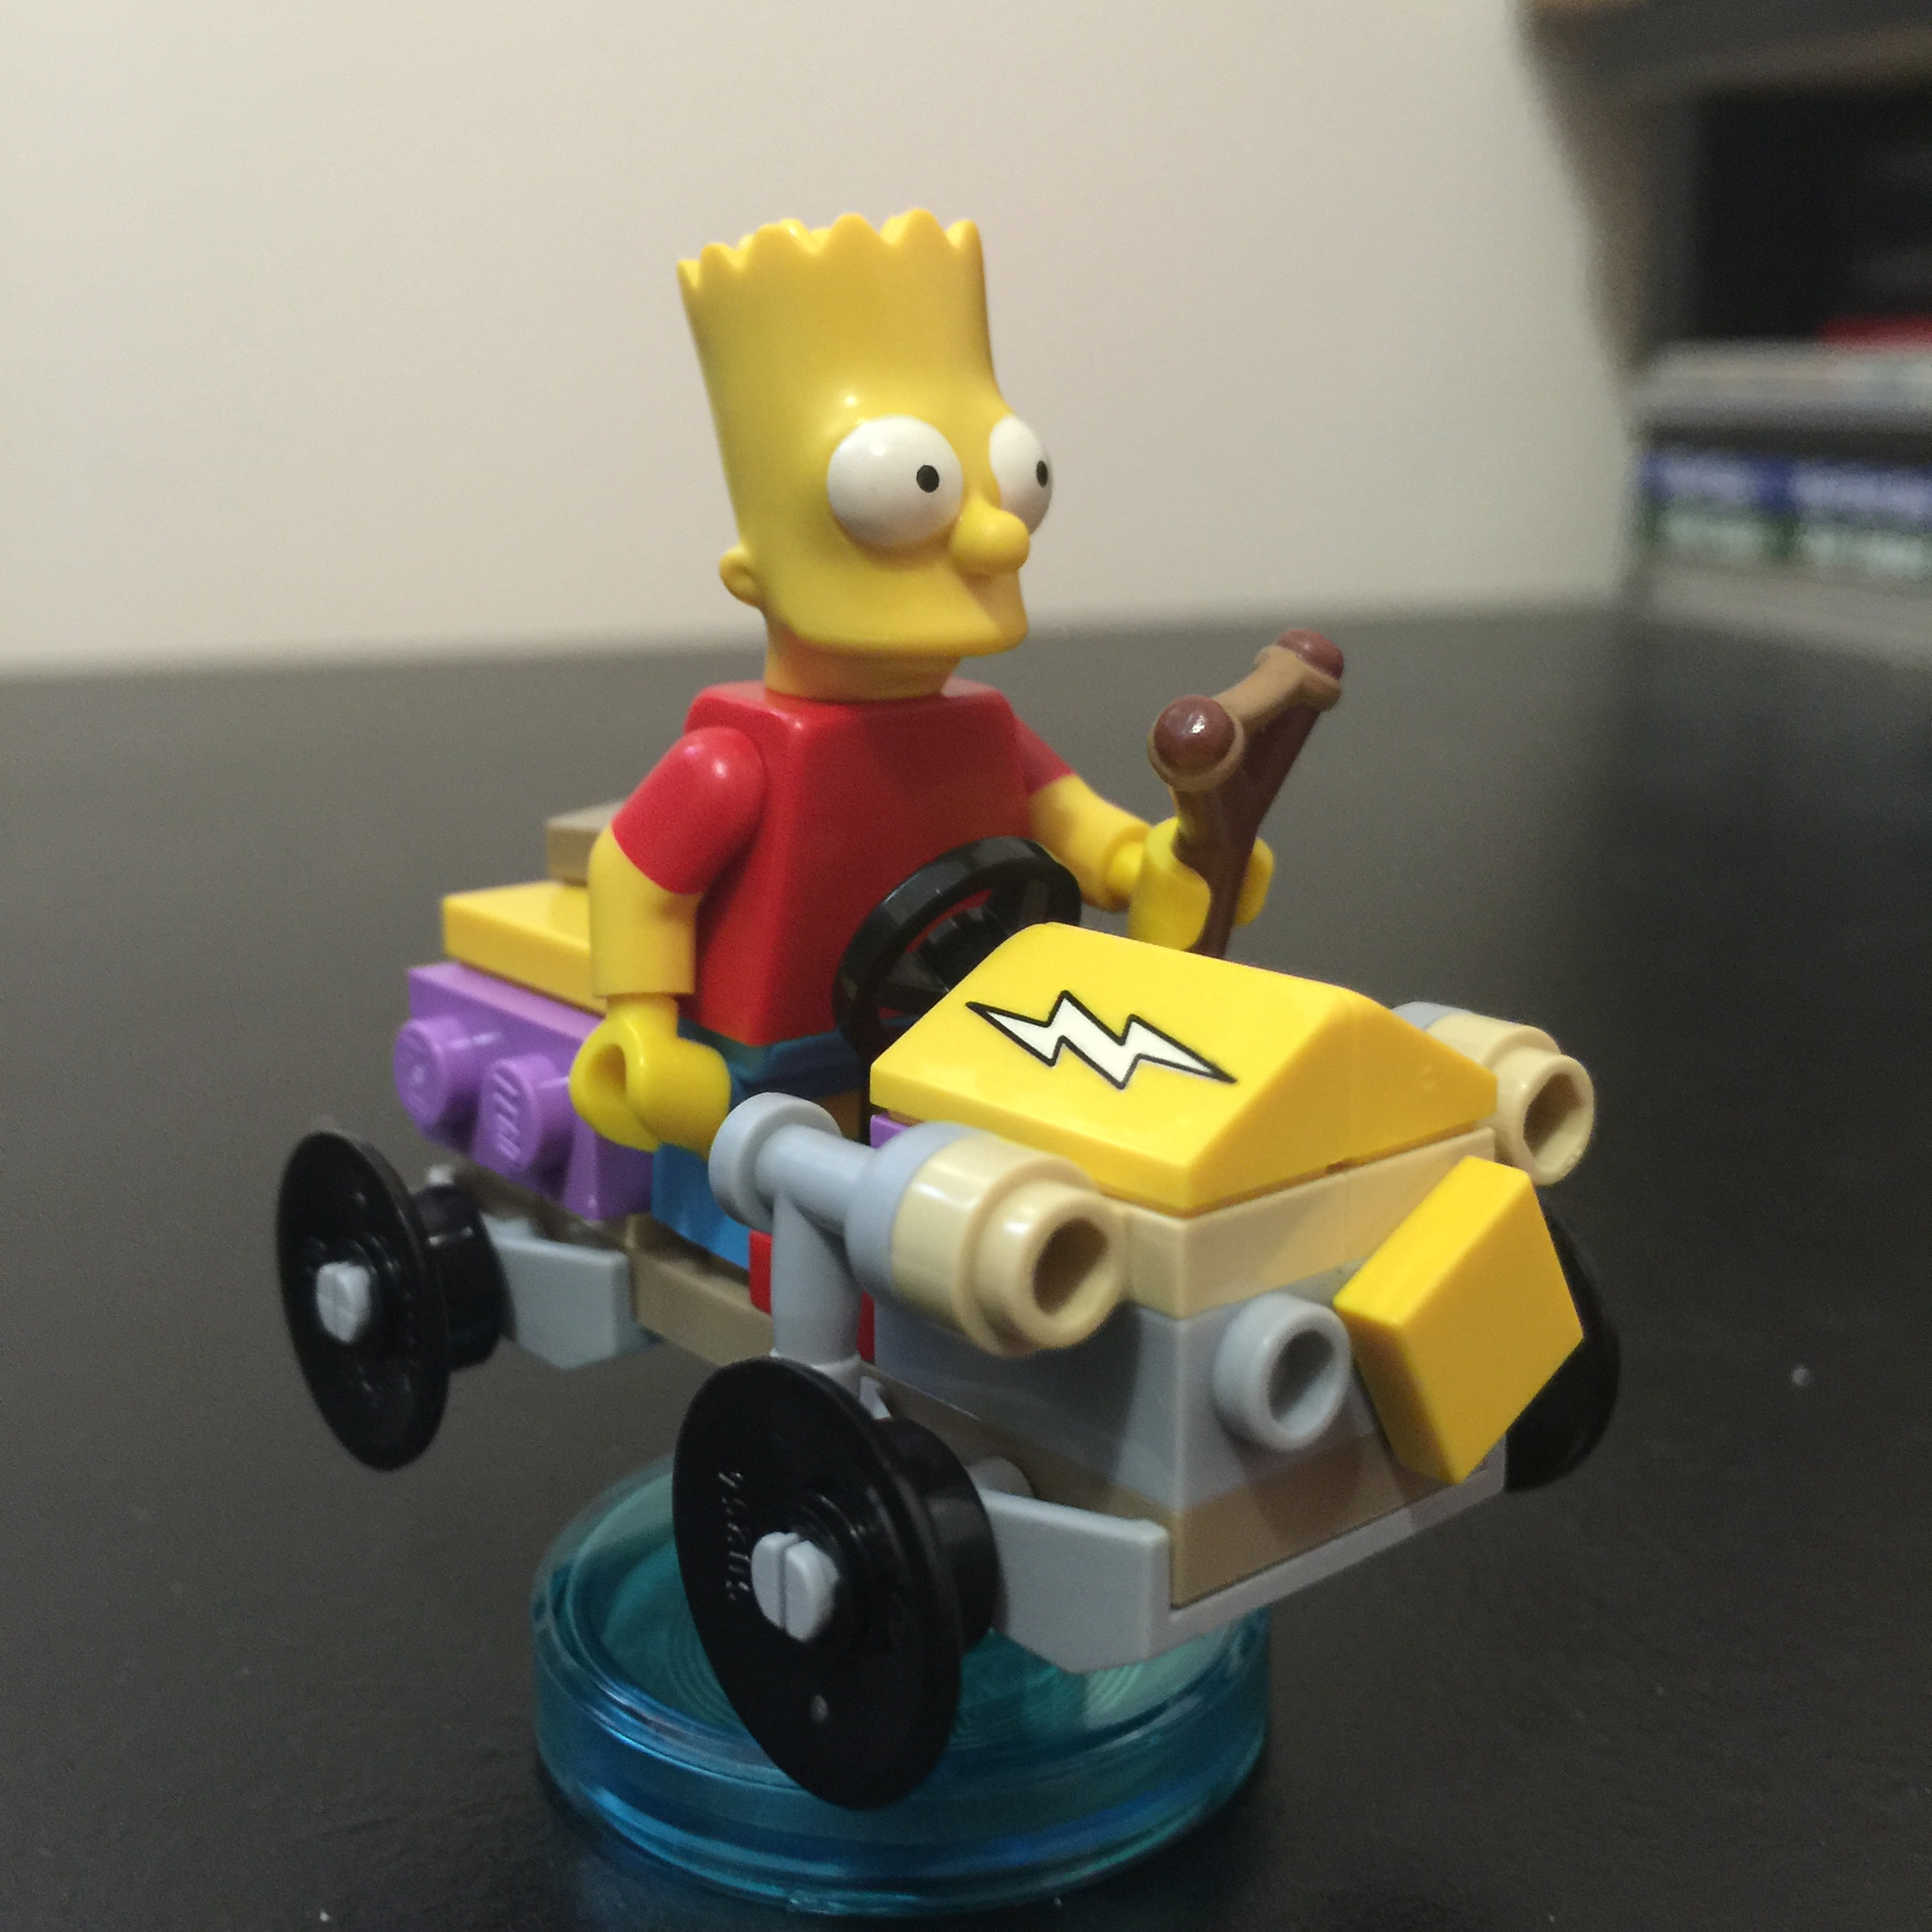 The LEGO Dimensions